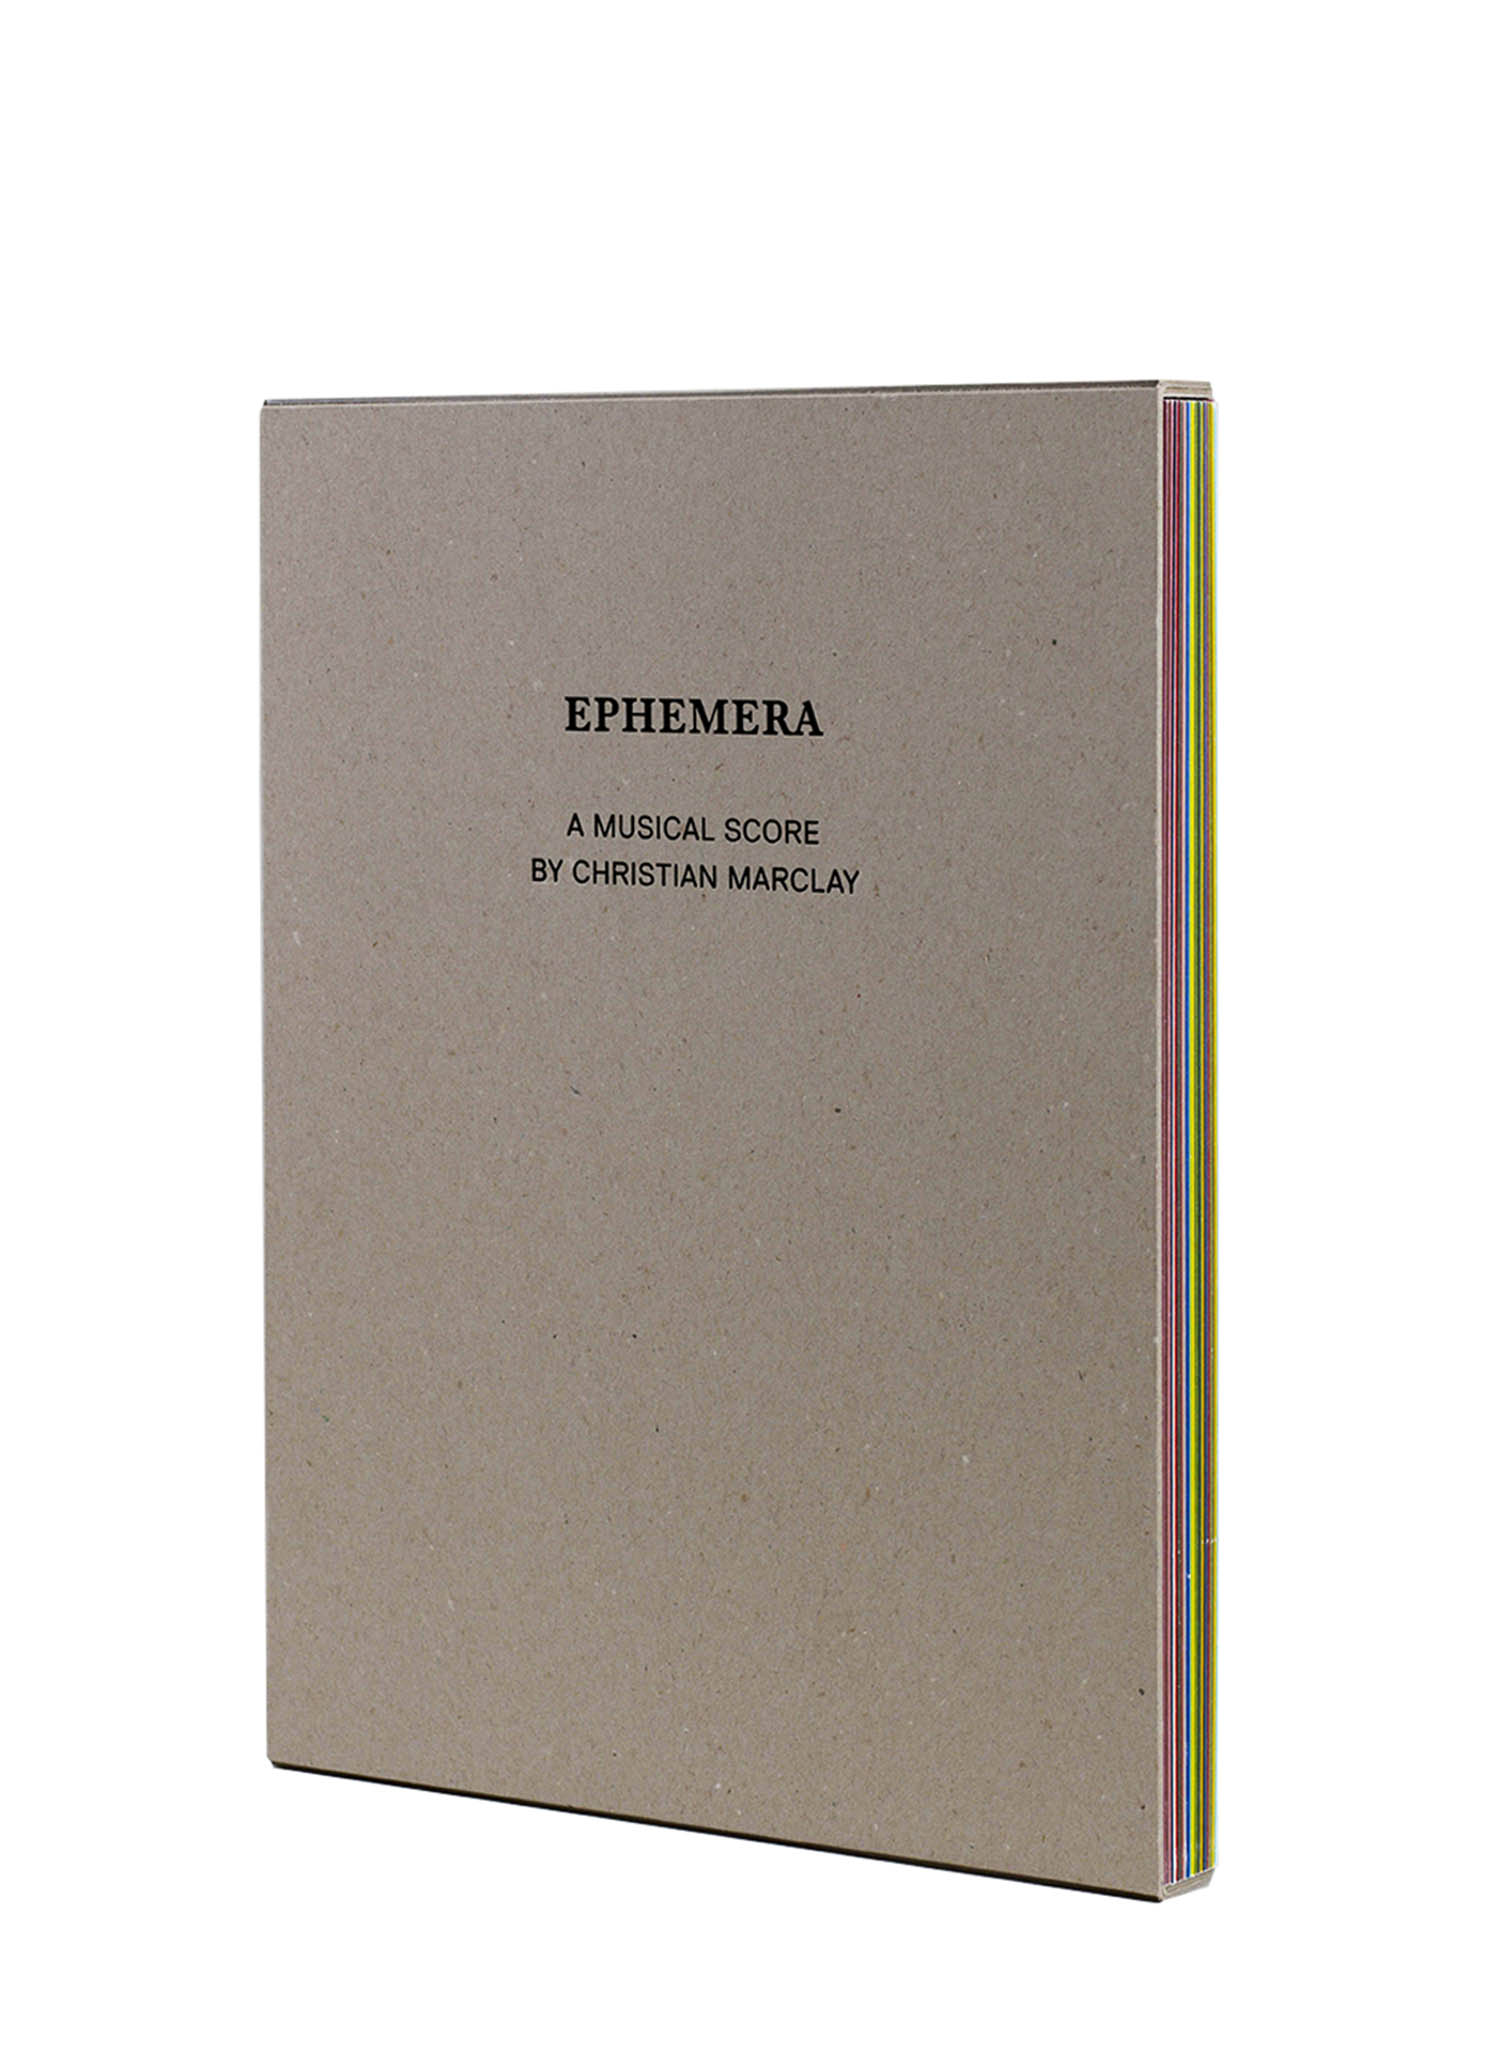 Christian Marclay - Ephemera, 2009